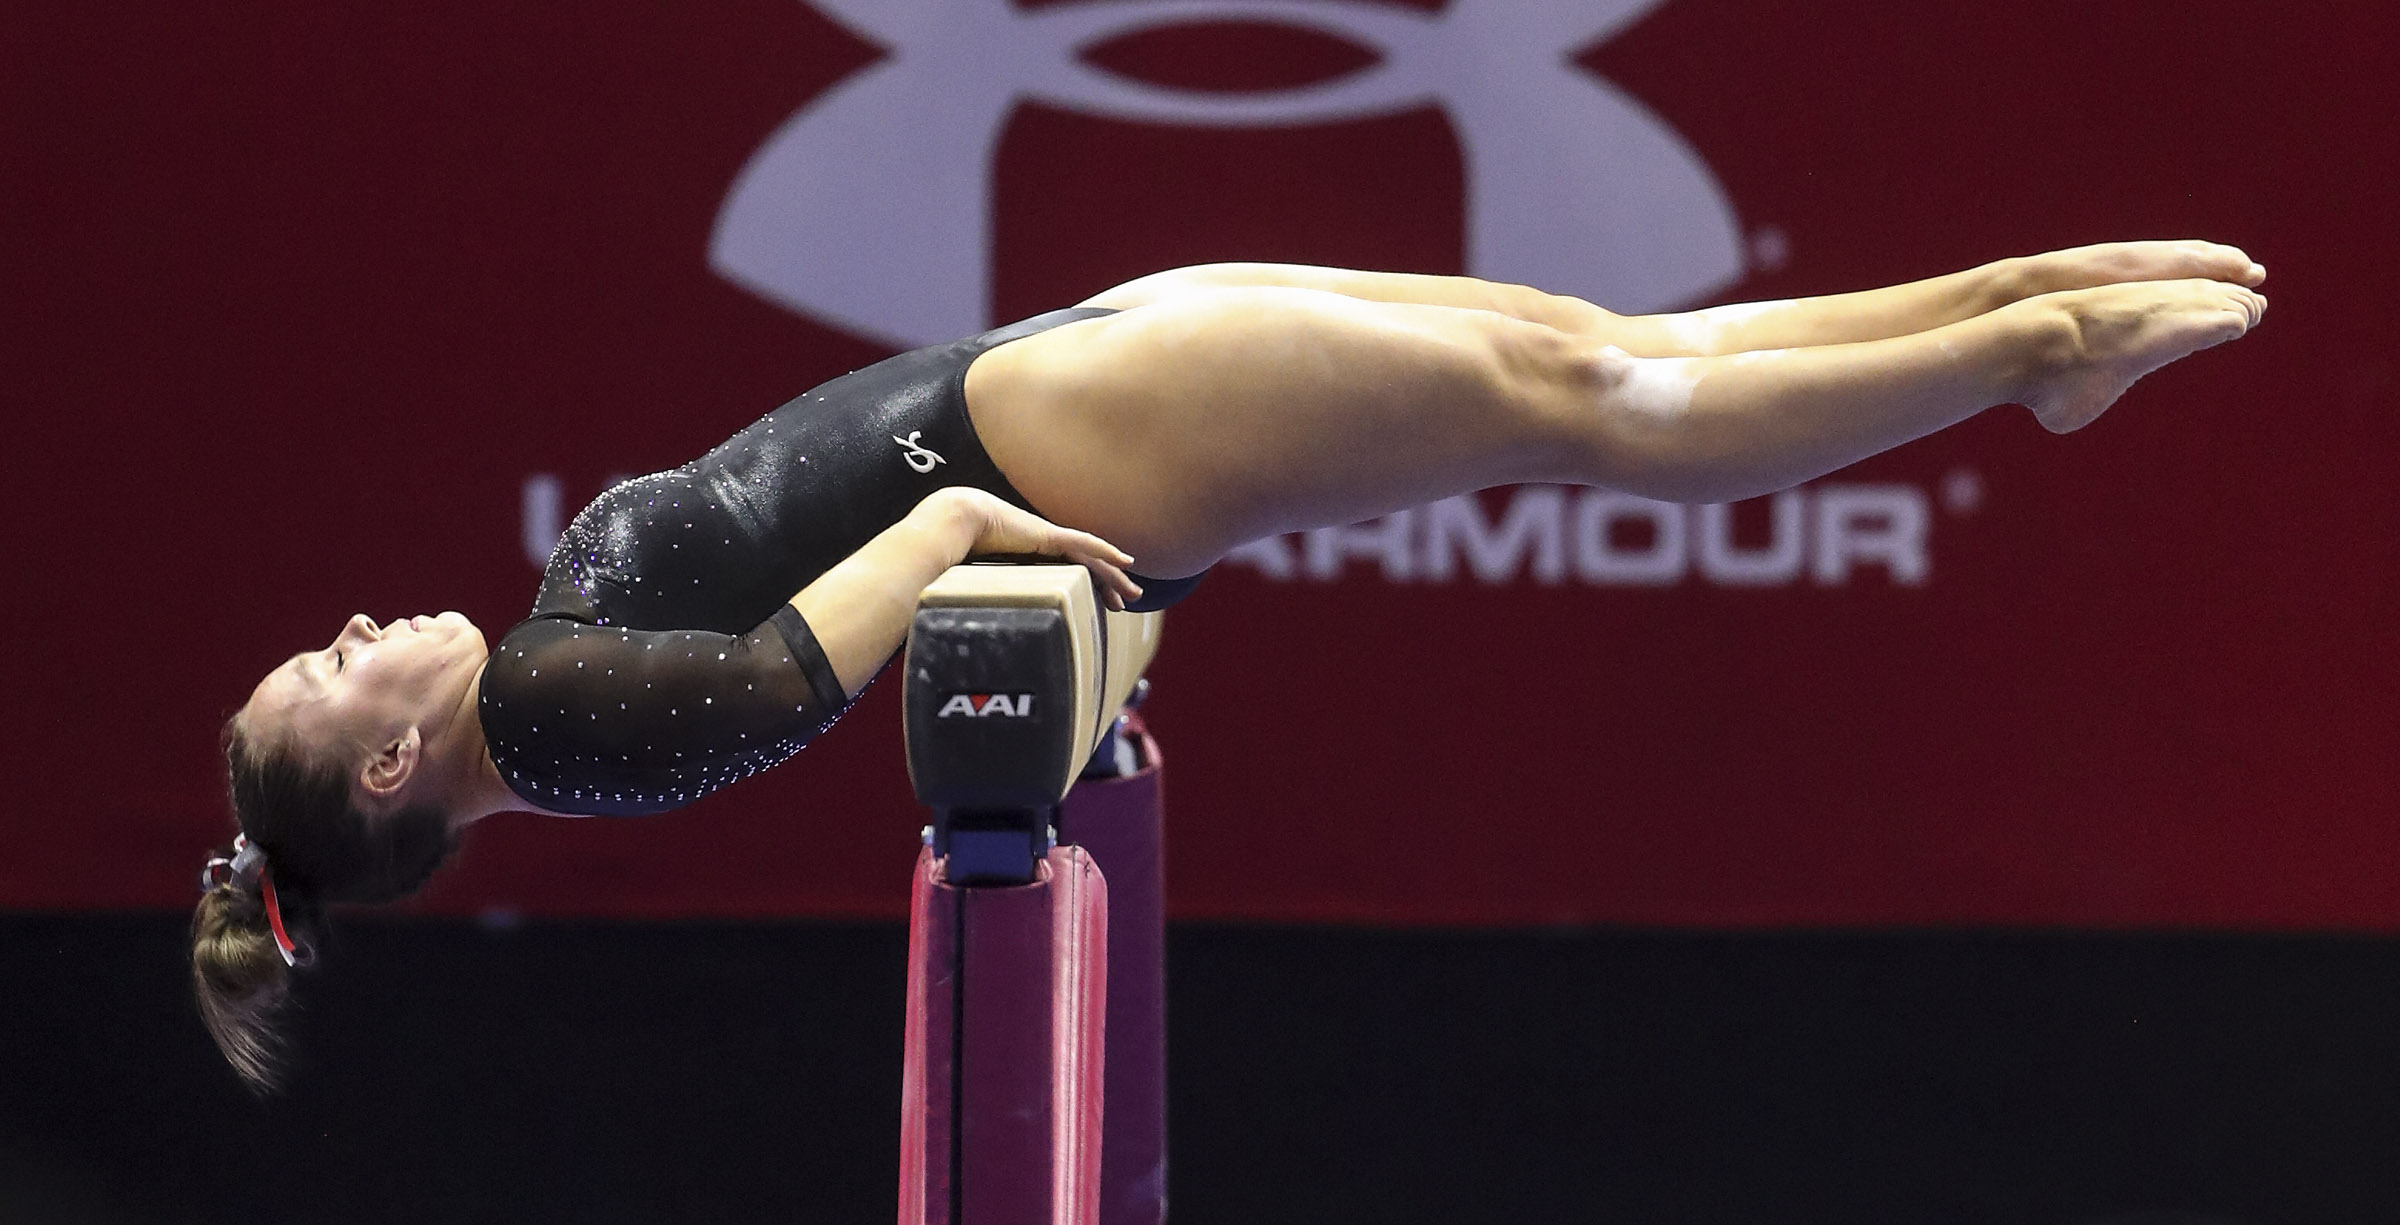 Utah's Maile O'Keefe balances on the beam during her mount in the Arizona State and University of Utah gymnastics meet at the Huntsman Center in Salt Lake City on Friday, Jan. 24, 2020.